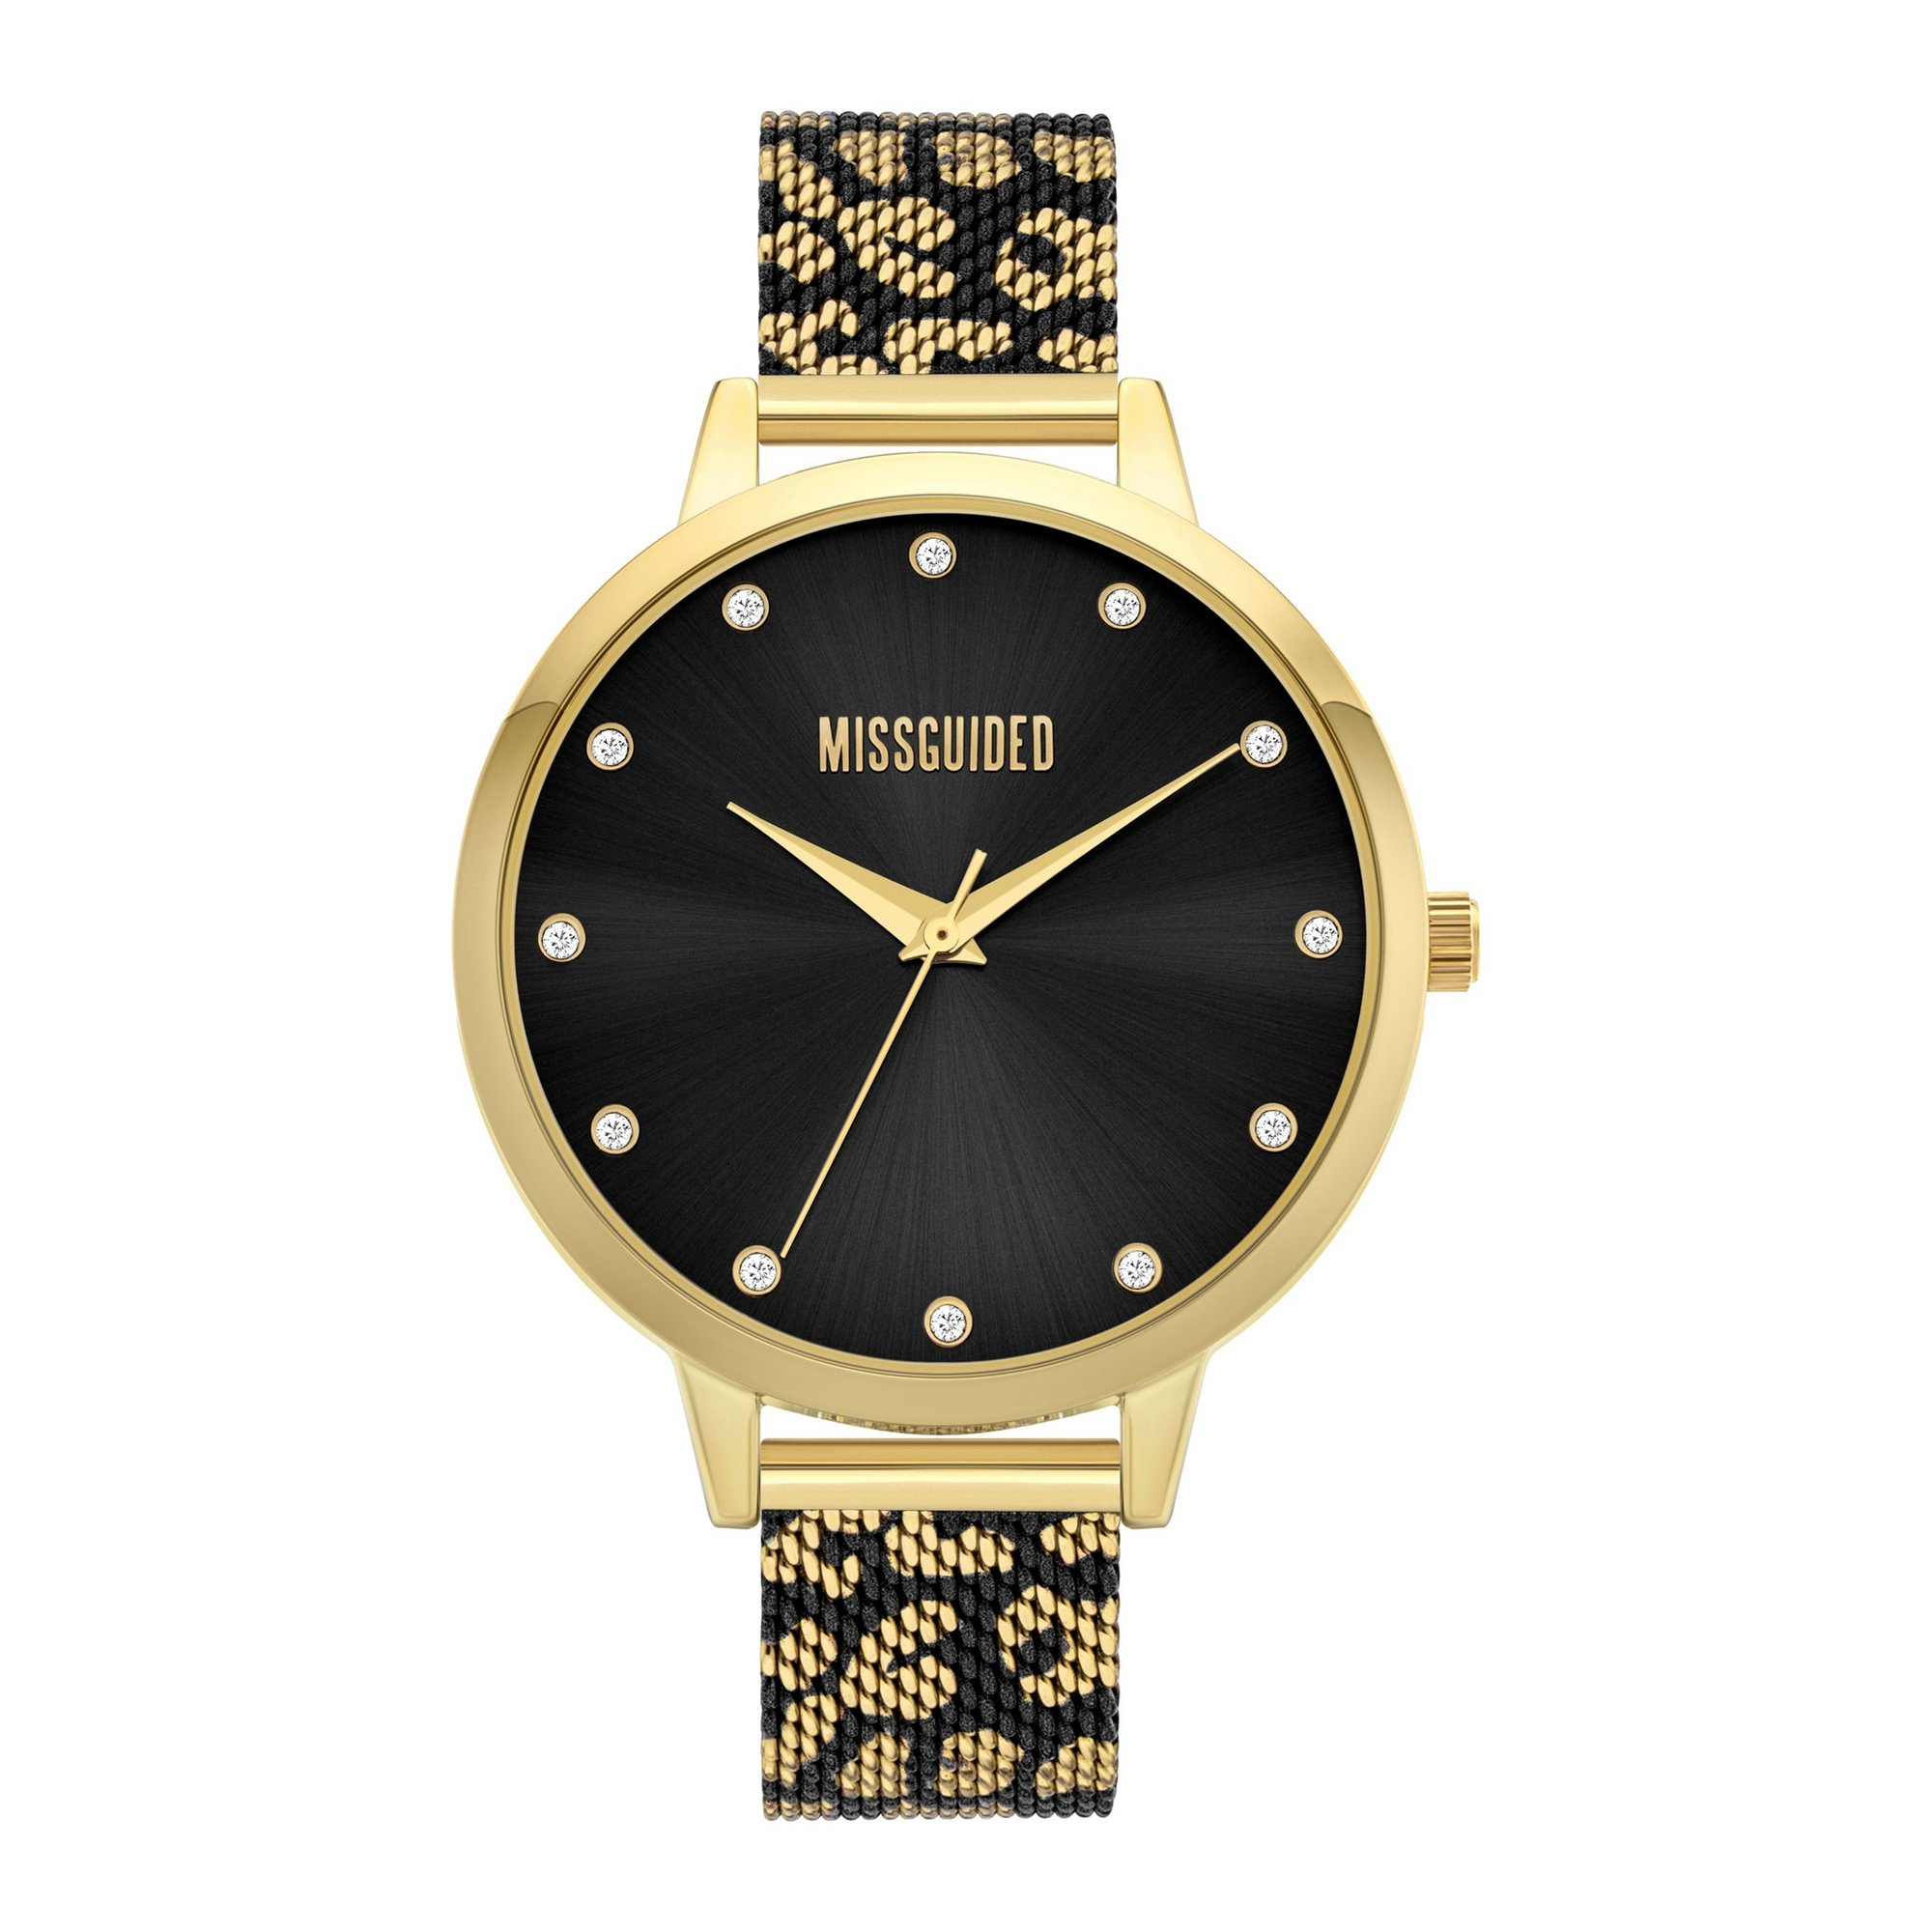 Image of Missguided Leopard Print Mesh Strap Watch with Black Dial